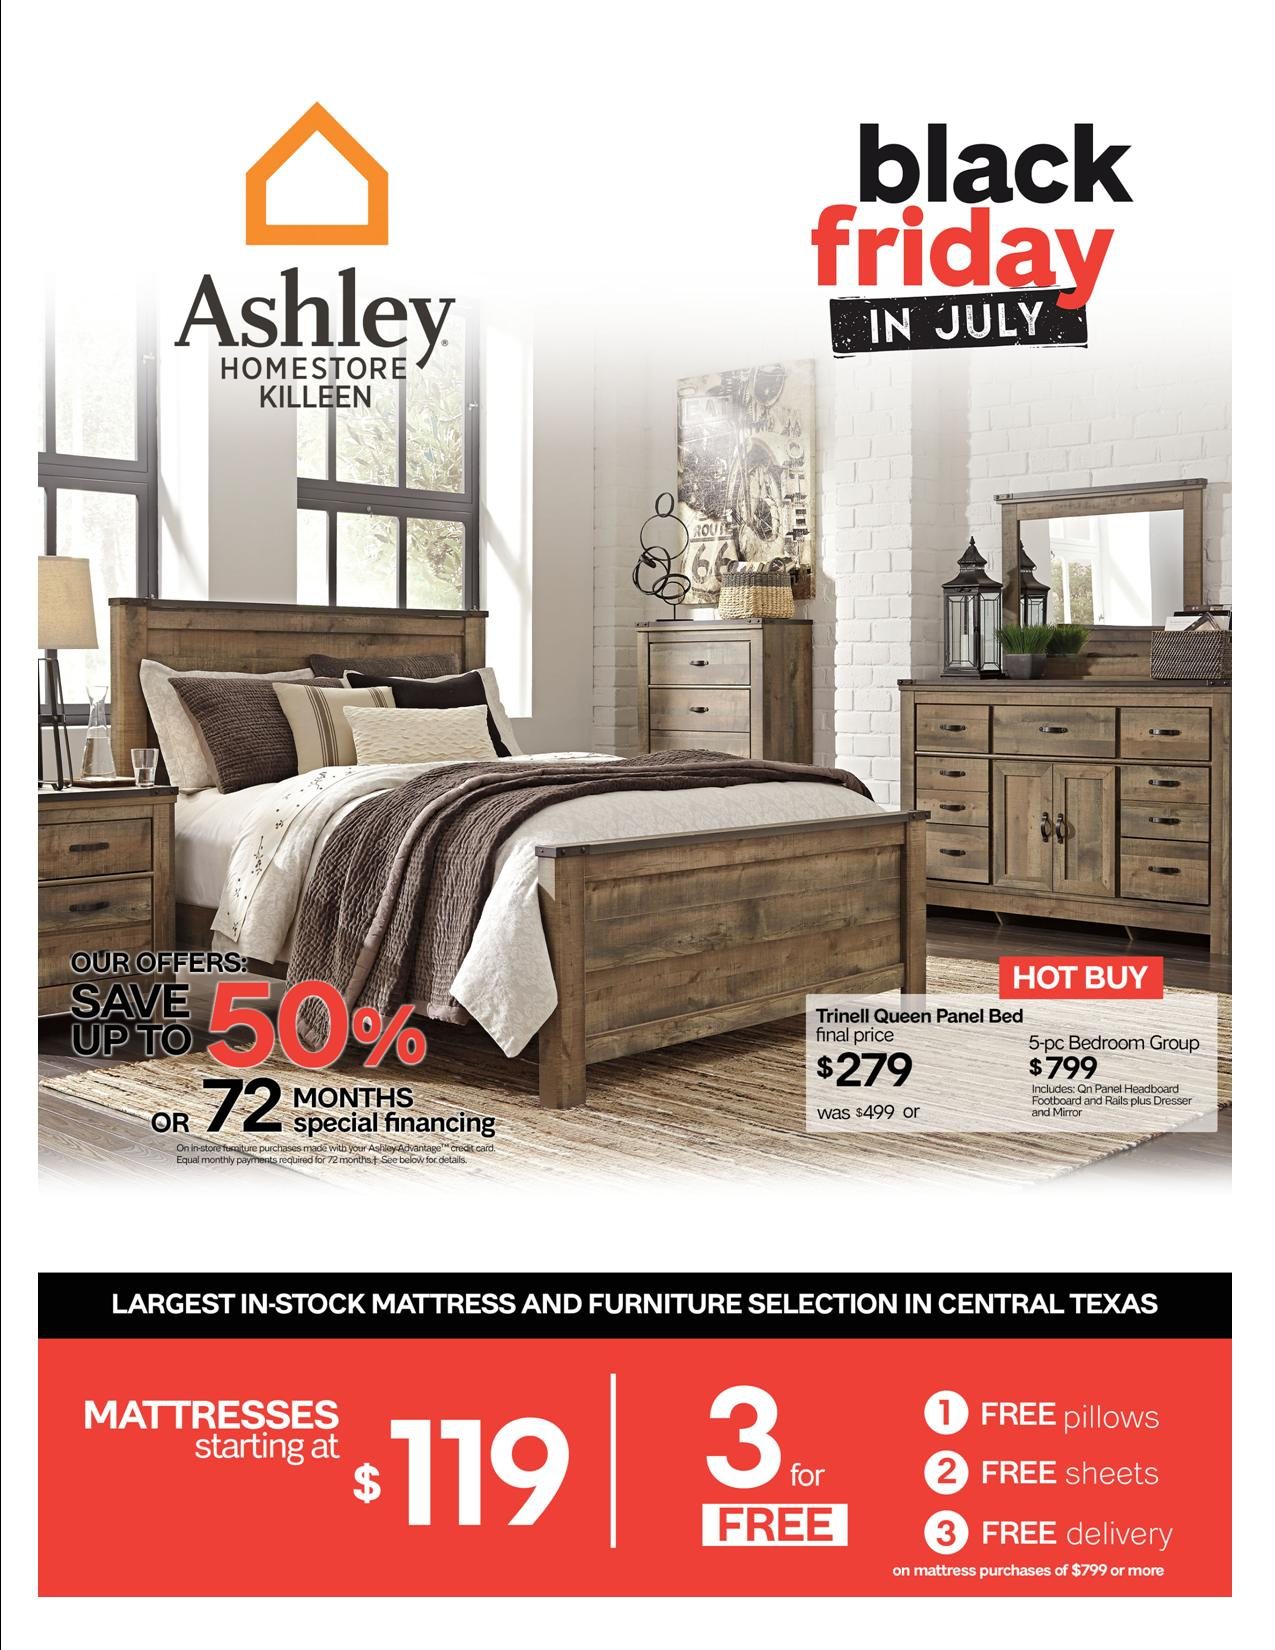 Ashley Homestore Furniture Specials Furniture Killeen Tx